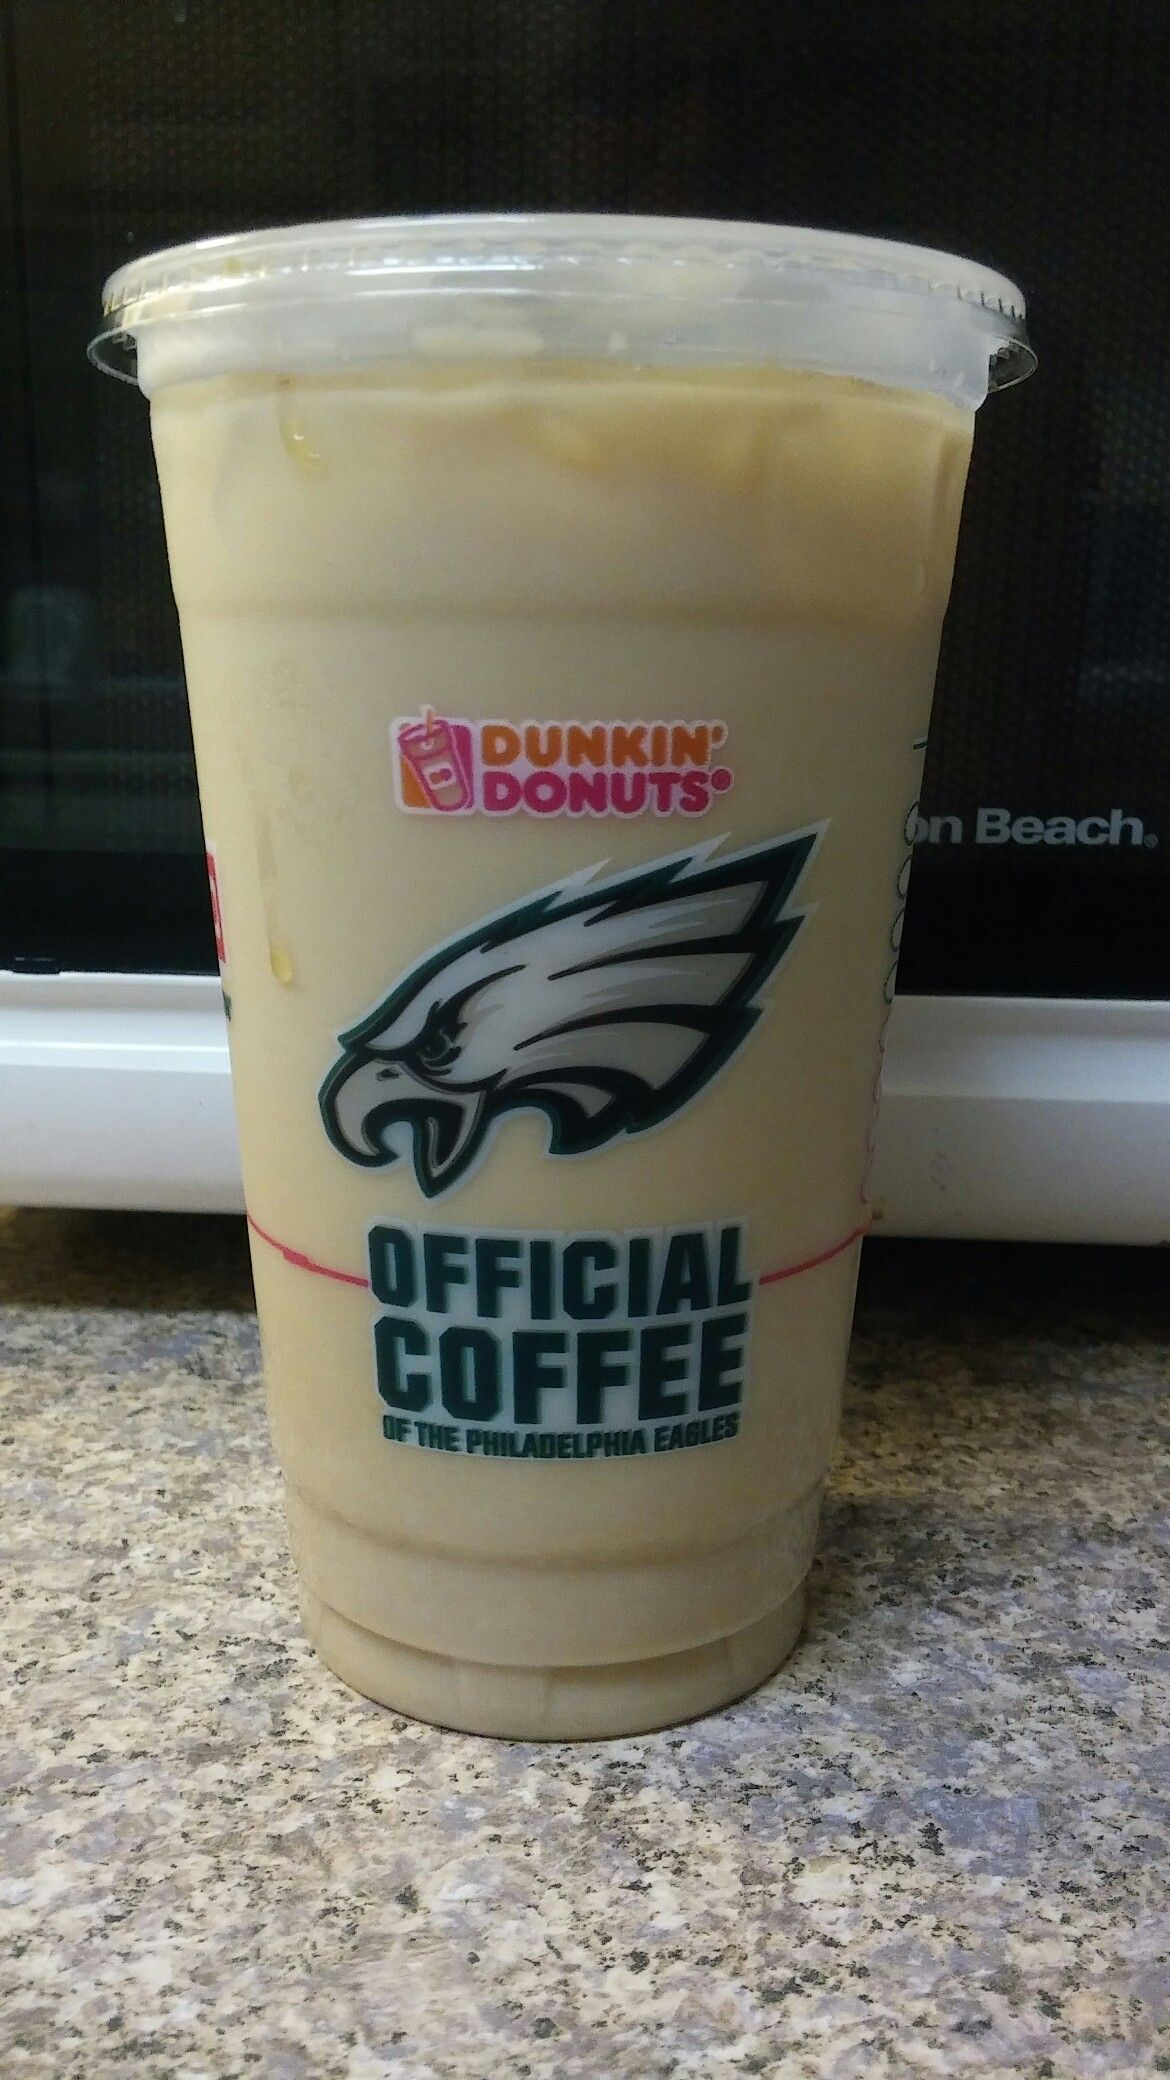 When the Eagles win I WIN! Free coffee from Dunkin Donuts